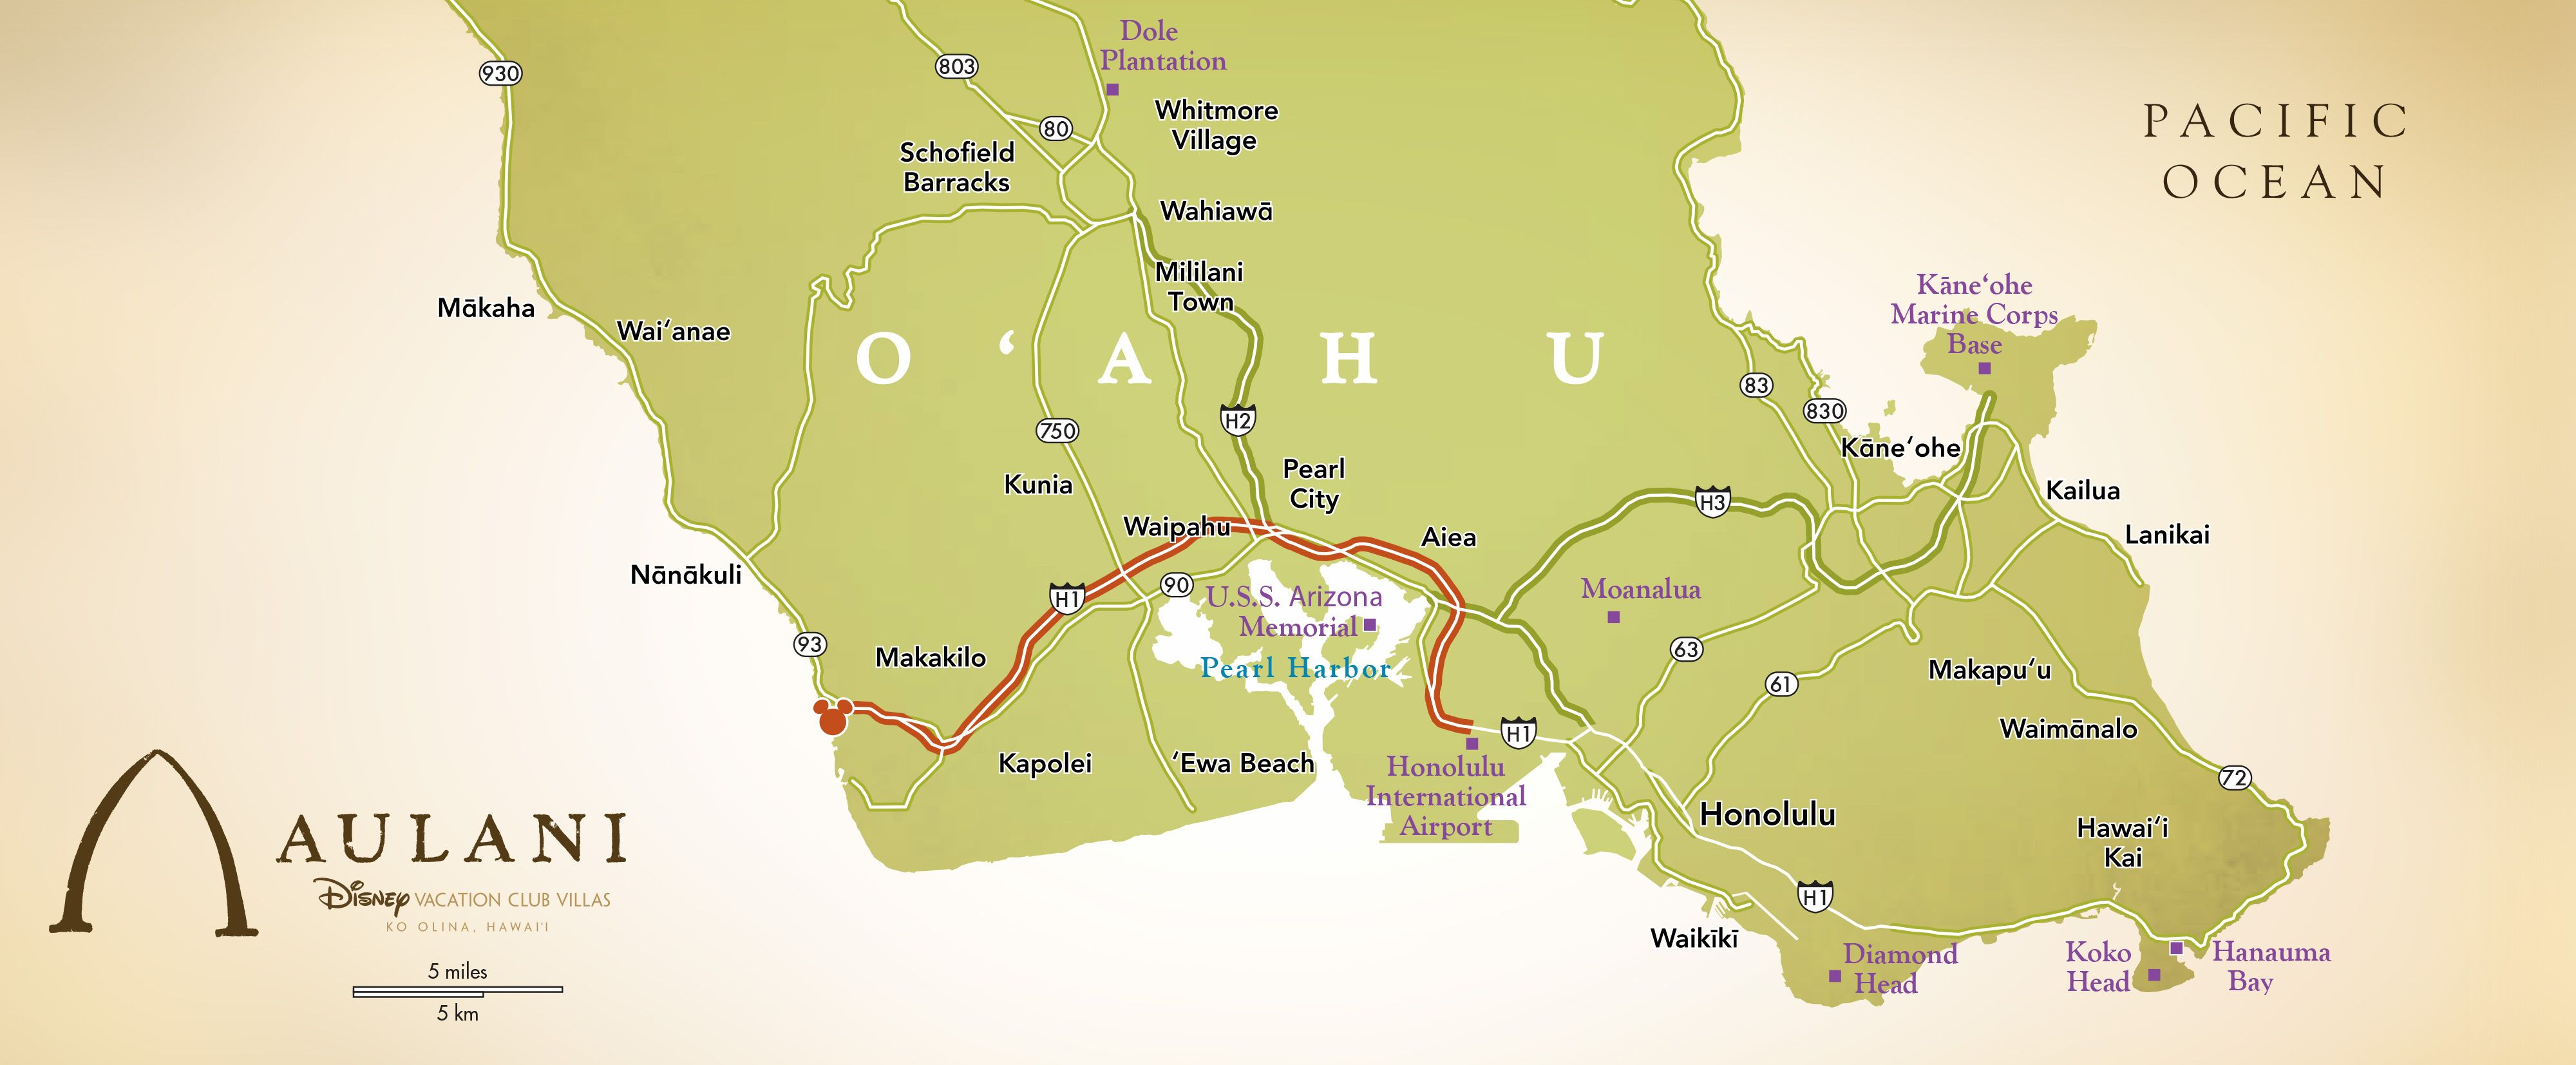 A map showing the route from Honolulu